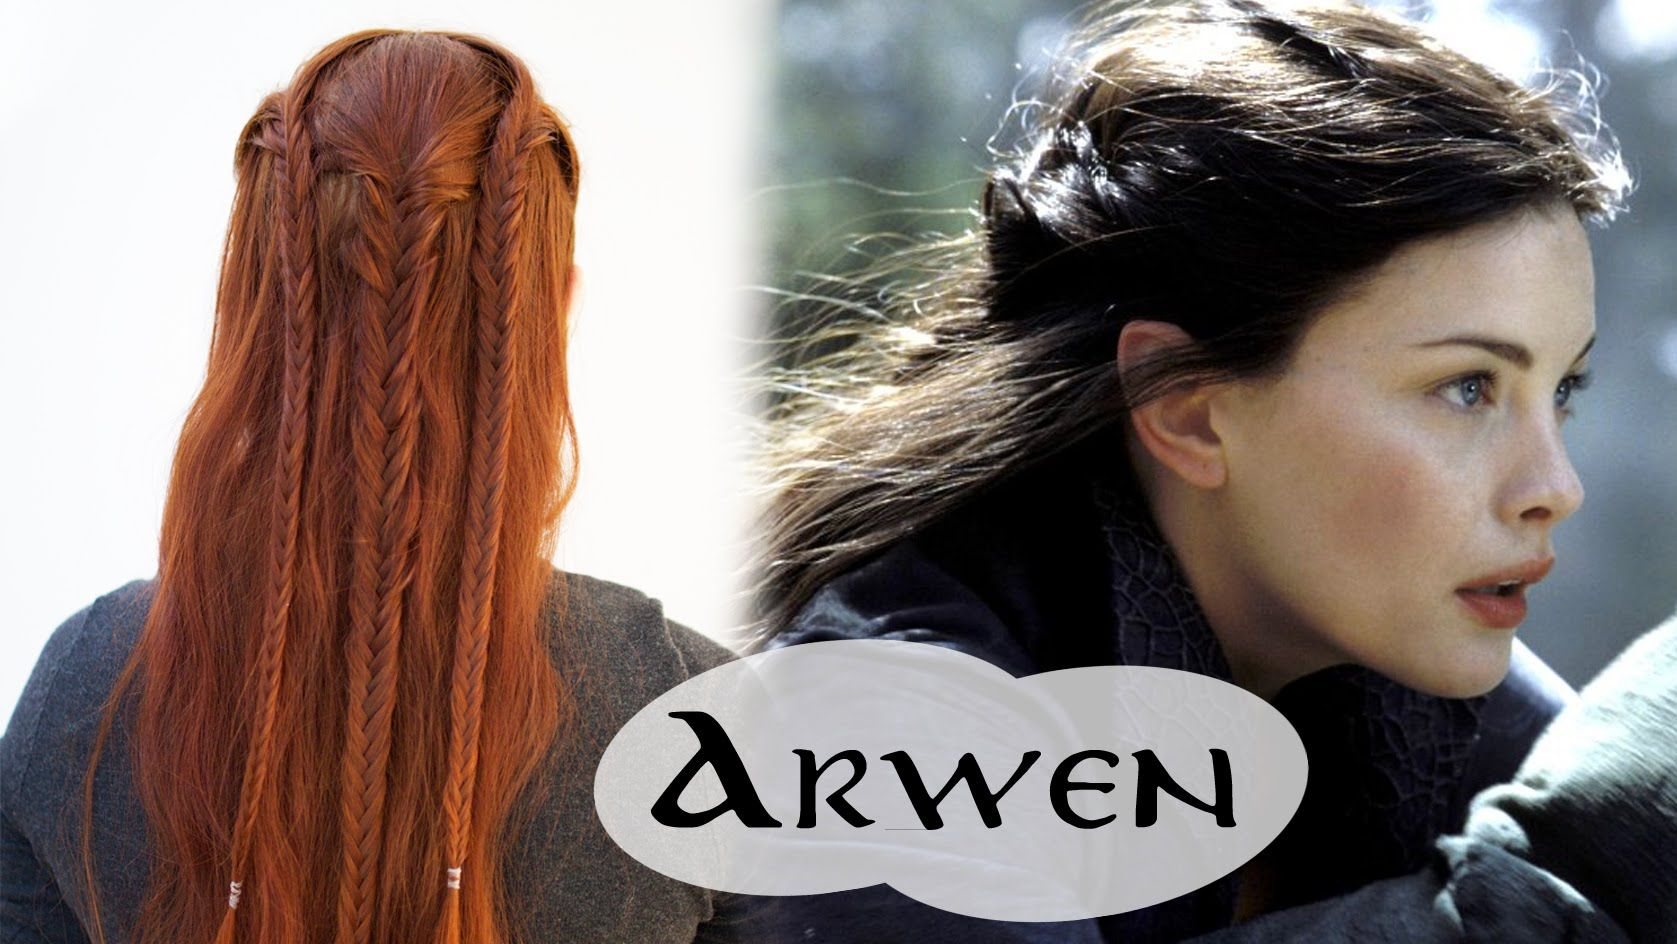 Catching Up On Some More Middle Earth Braid Style With This One It 39 S Hard To Tell What 39 S Really Going On In Arwen Hair Styles Hair Tutorial Elf Hair